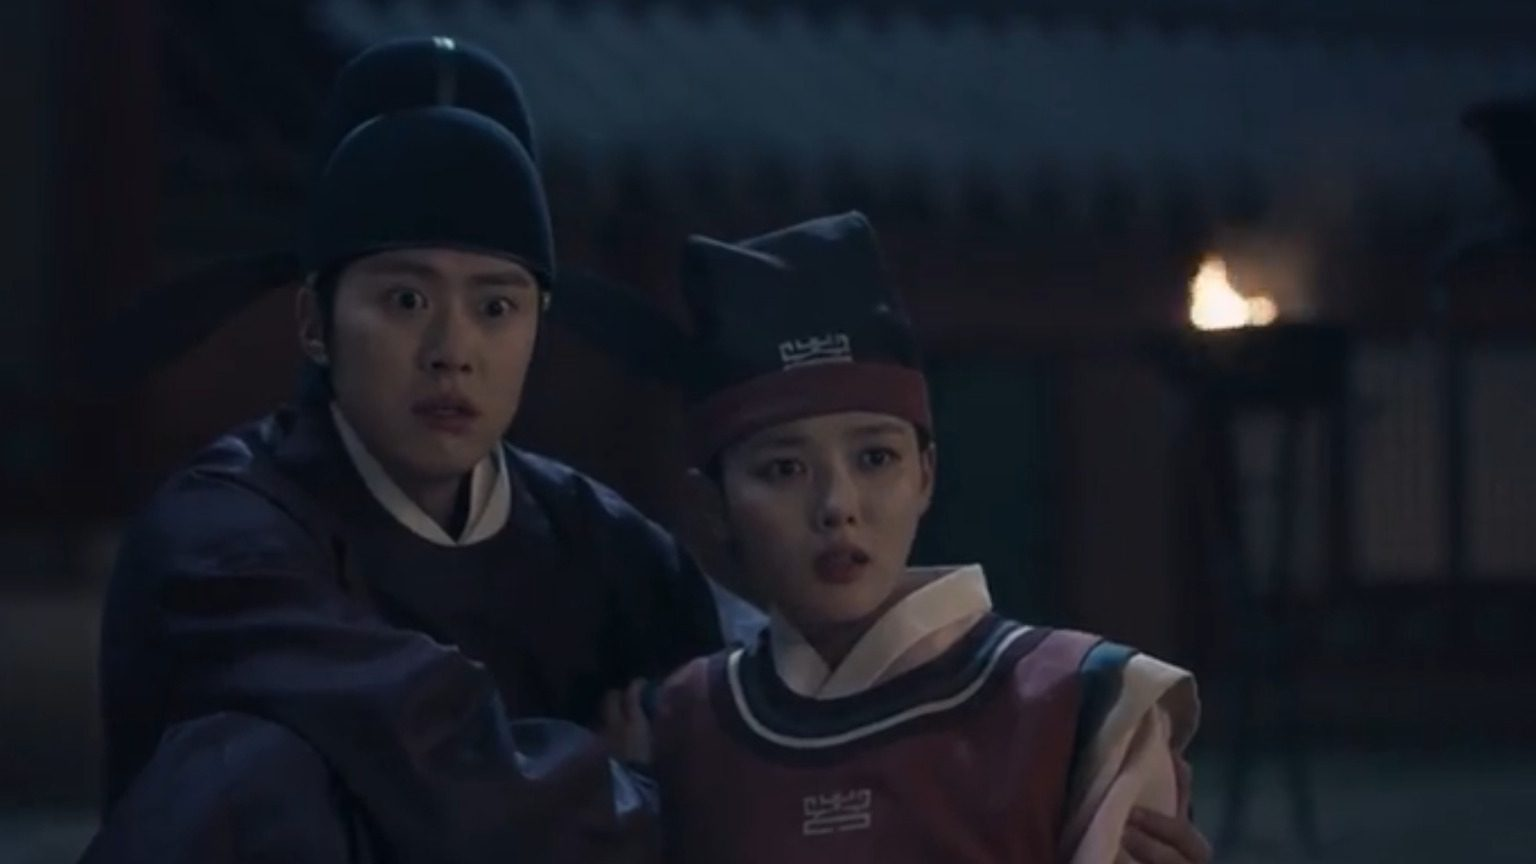 Lovers of The Red Sky Episode 10